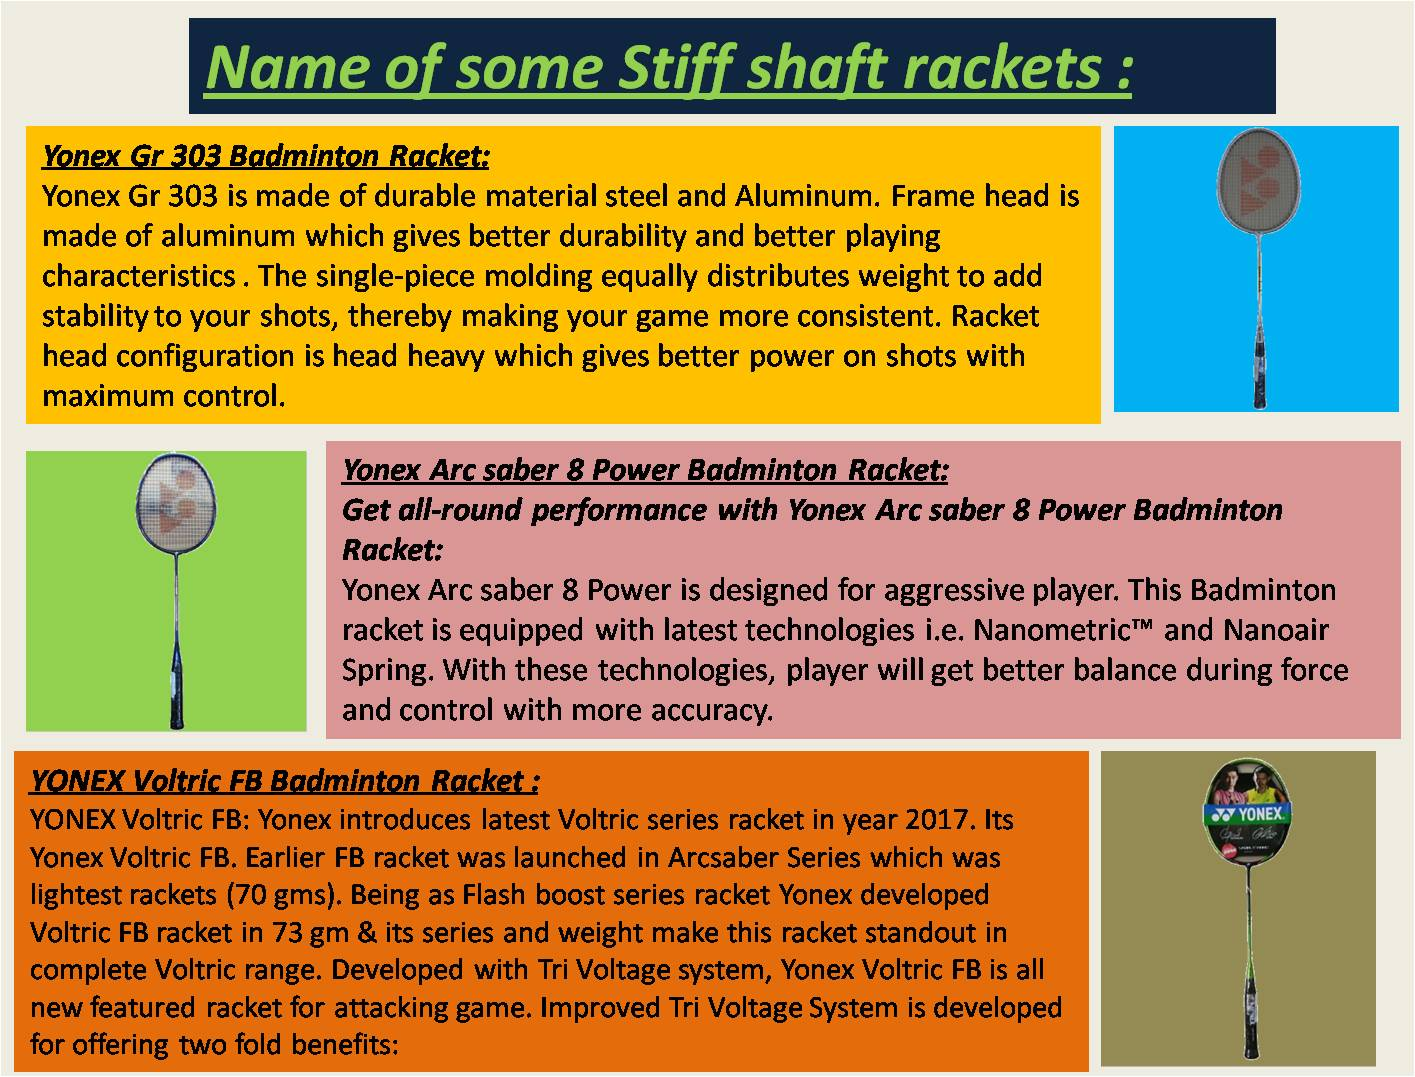 Name of some Stiff shaft rackets